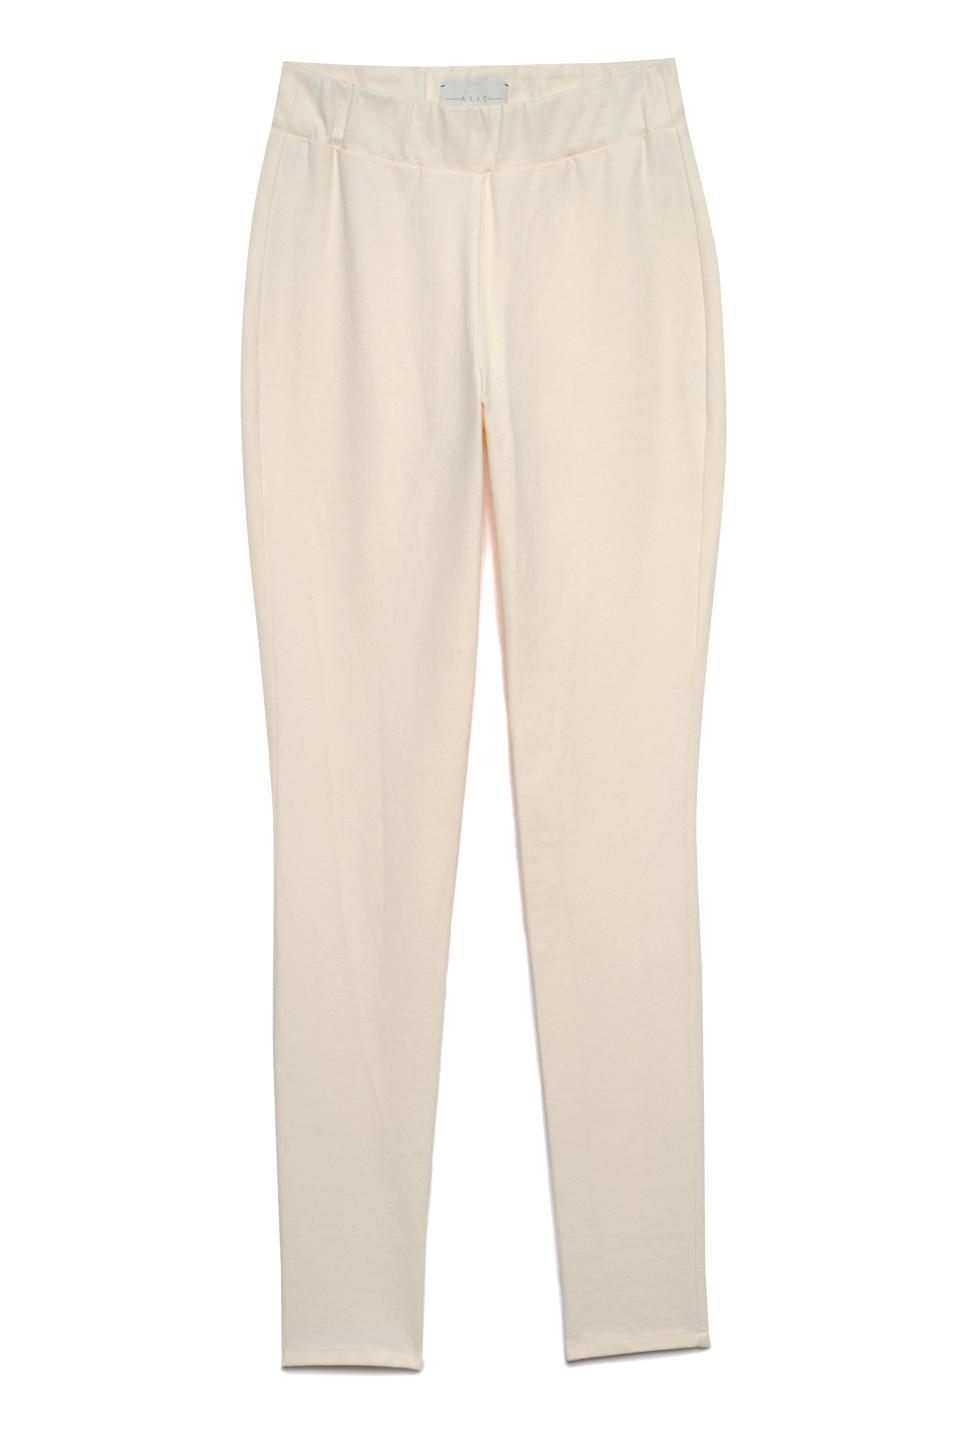 THE PIA PULL ON PANTS 6